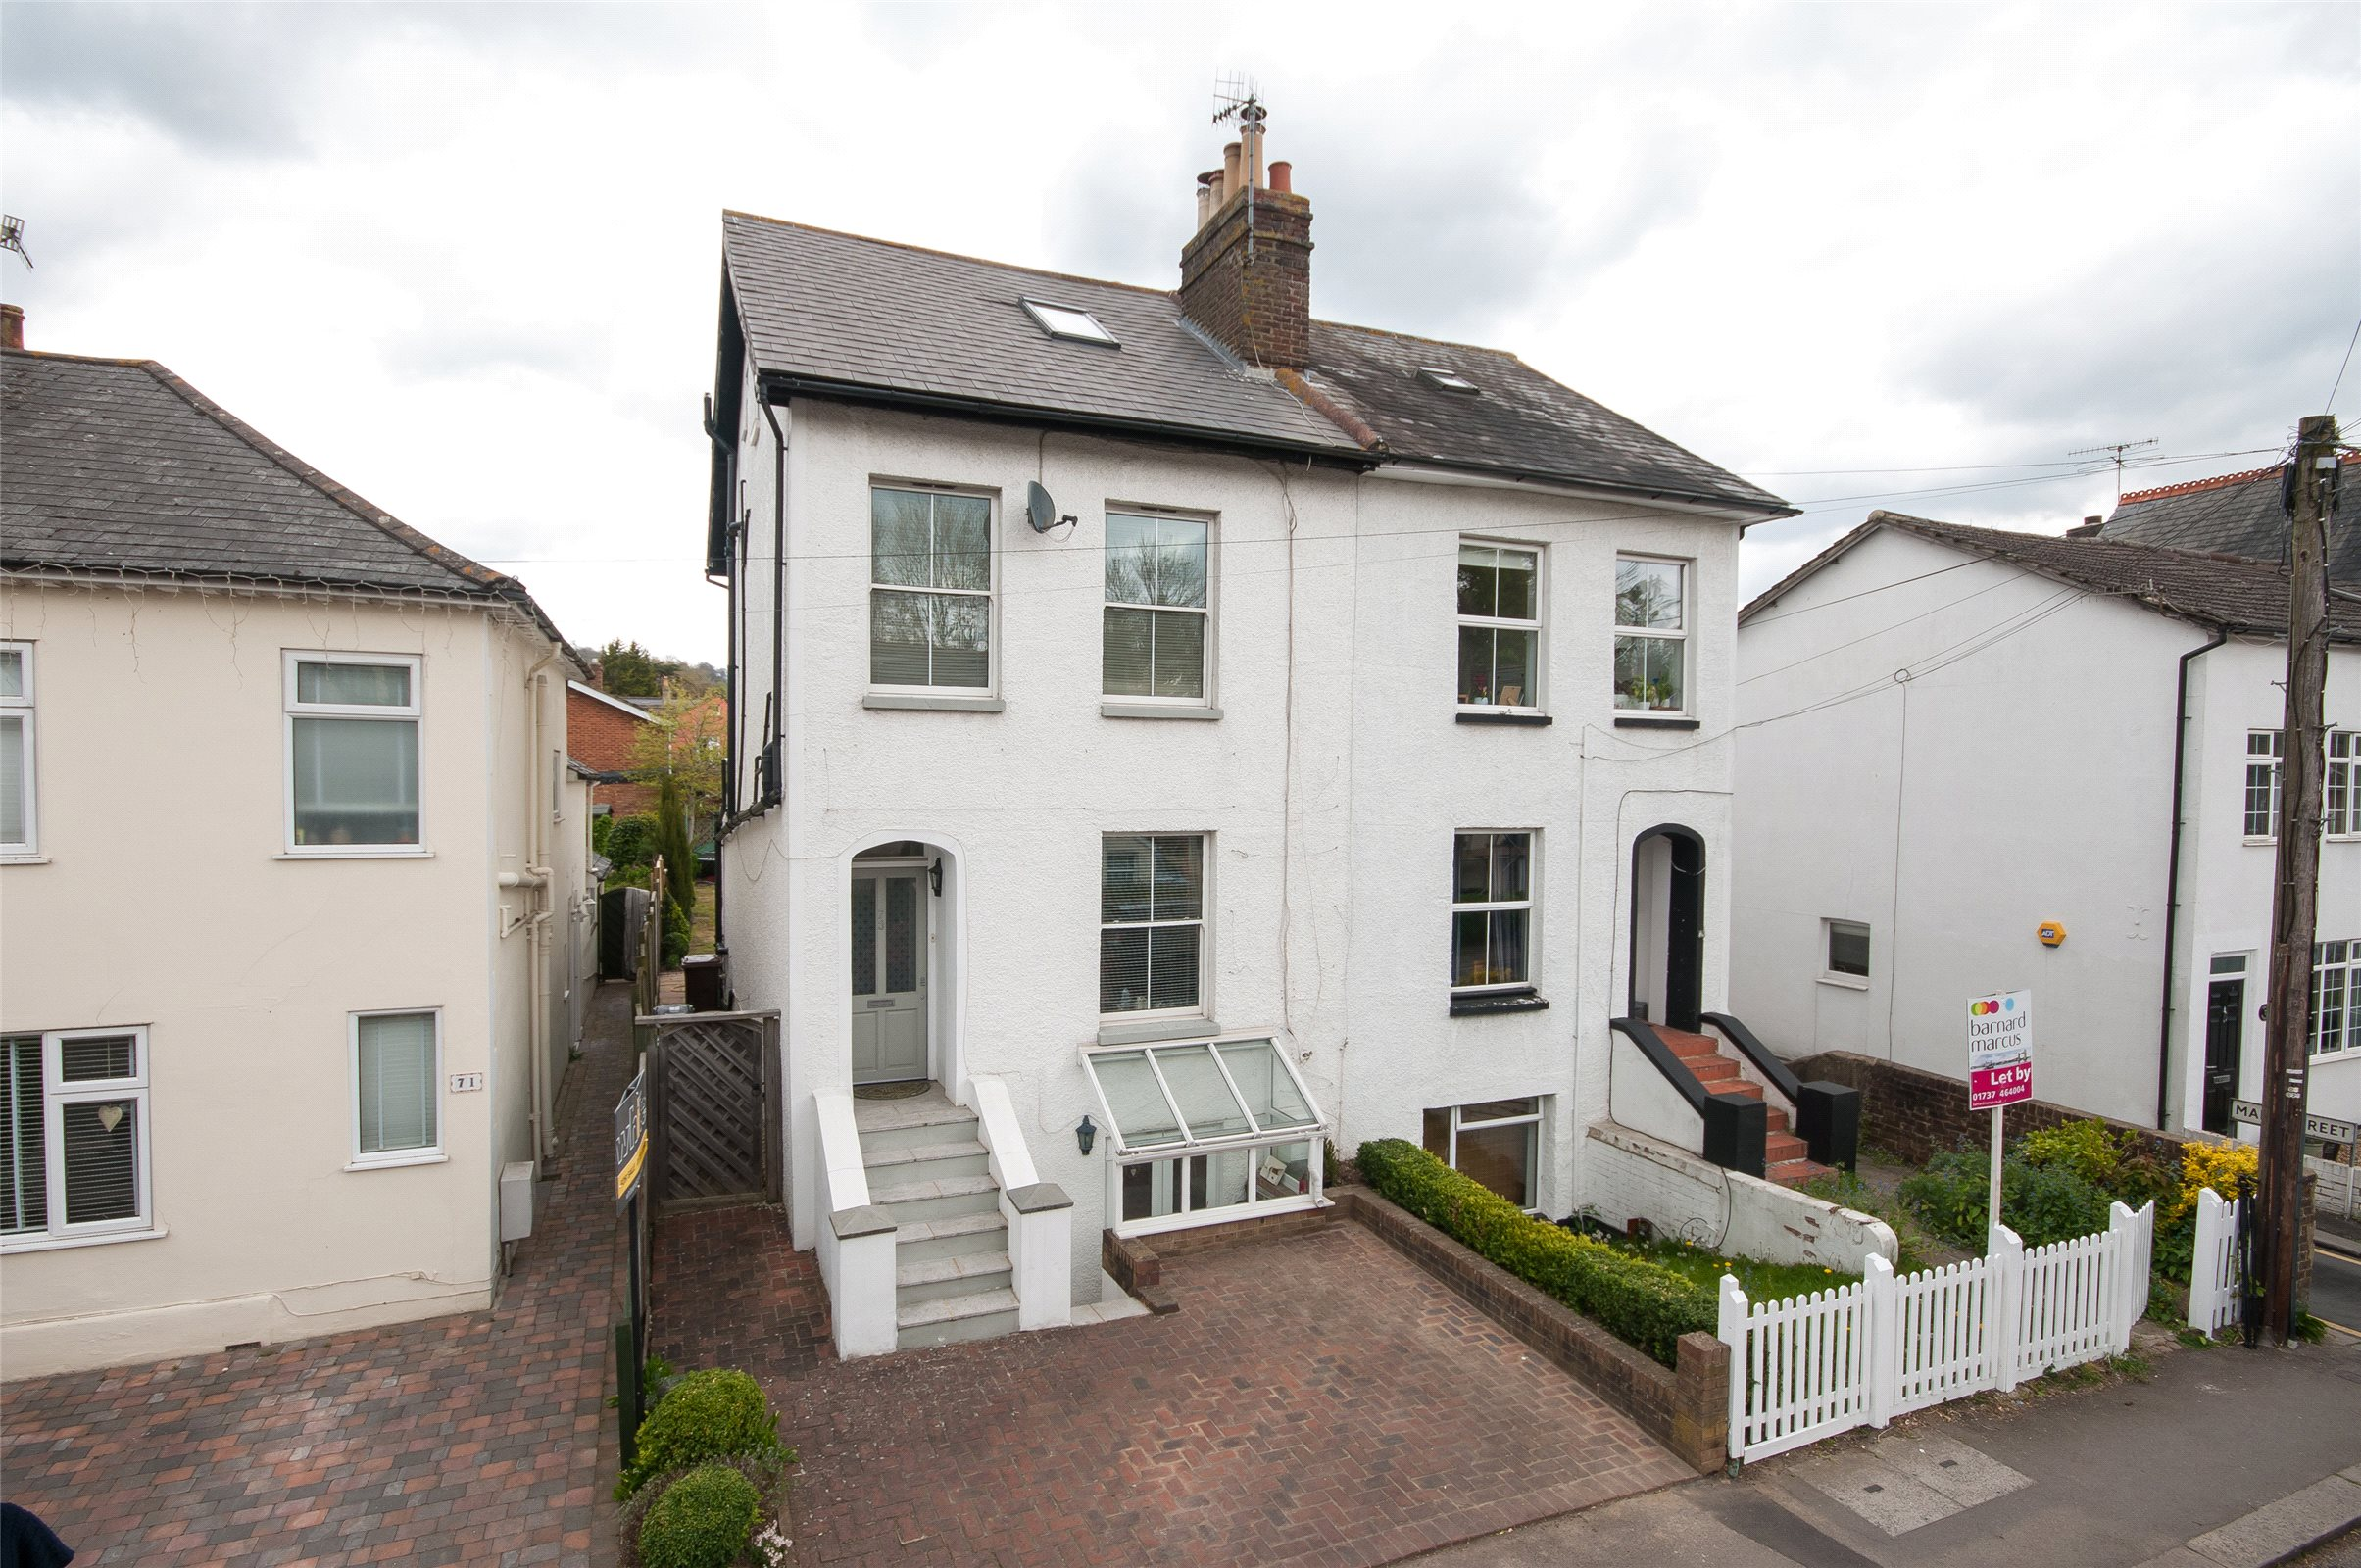 4 Bedrooms Semi Detached House for sale in Holmesdale Road, Reigate, Surrey, RH2